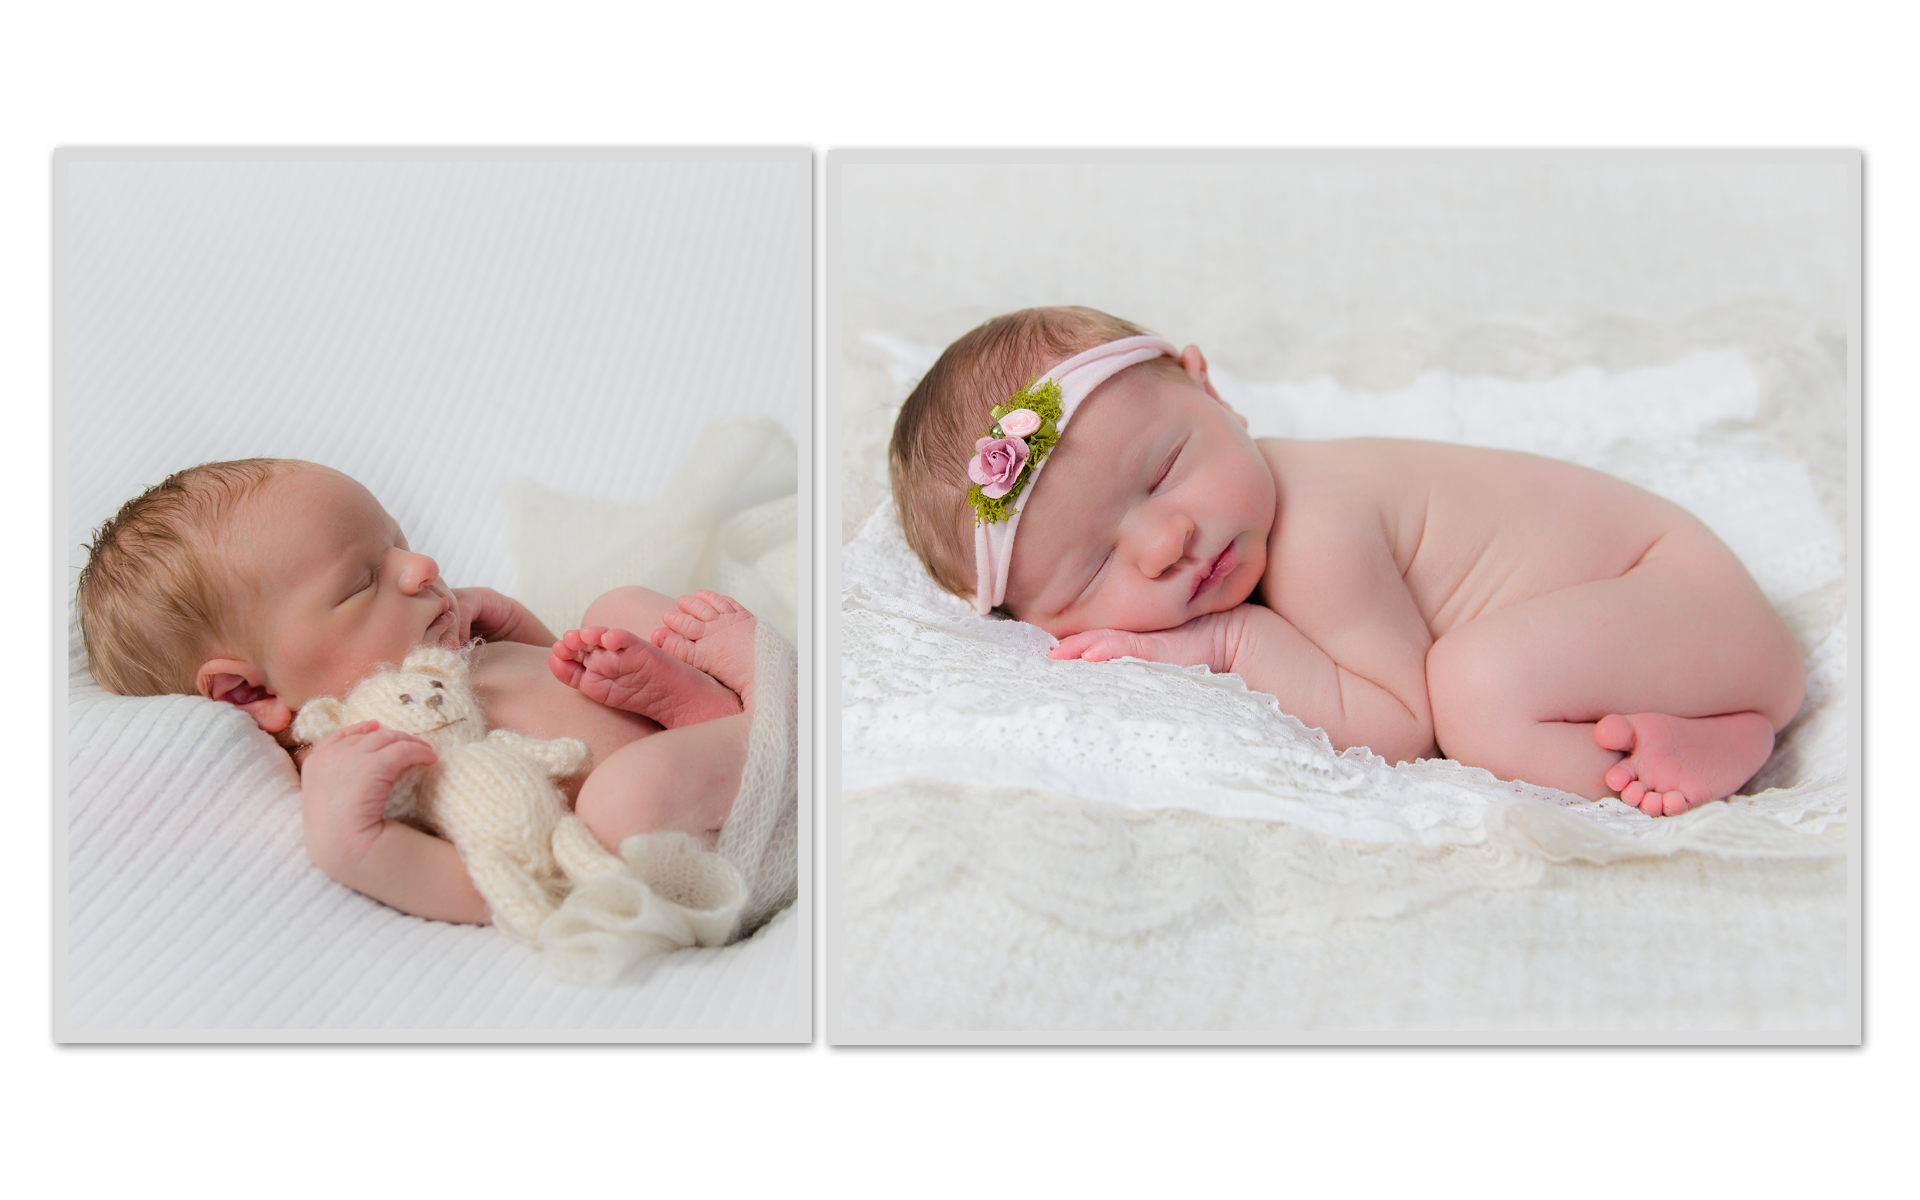 Newborn-Photography-newborn_Baby-Photography-and-Maternity-Photography_preeemie_girl